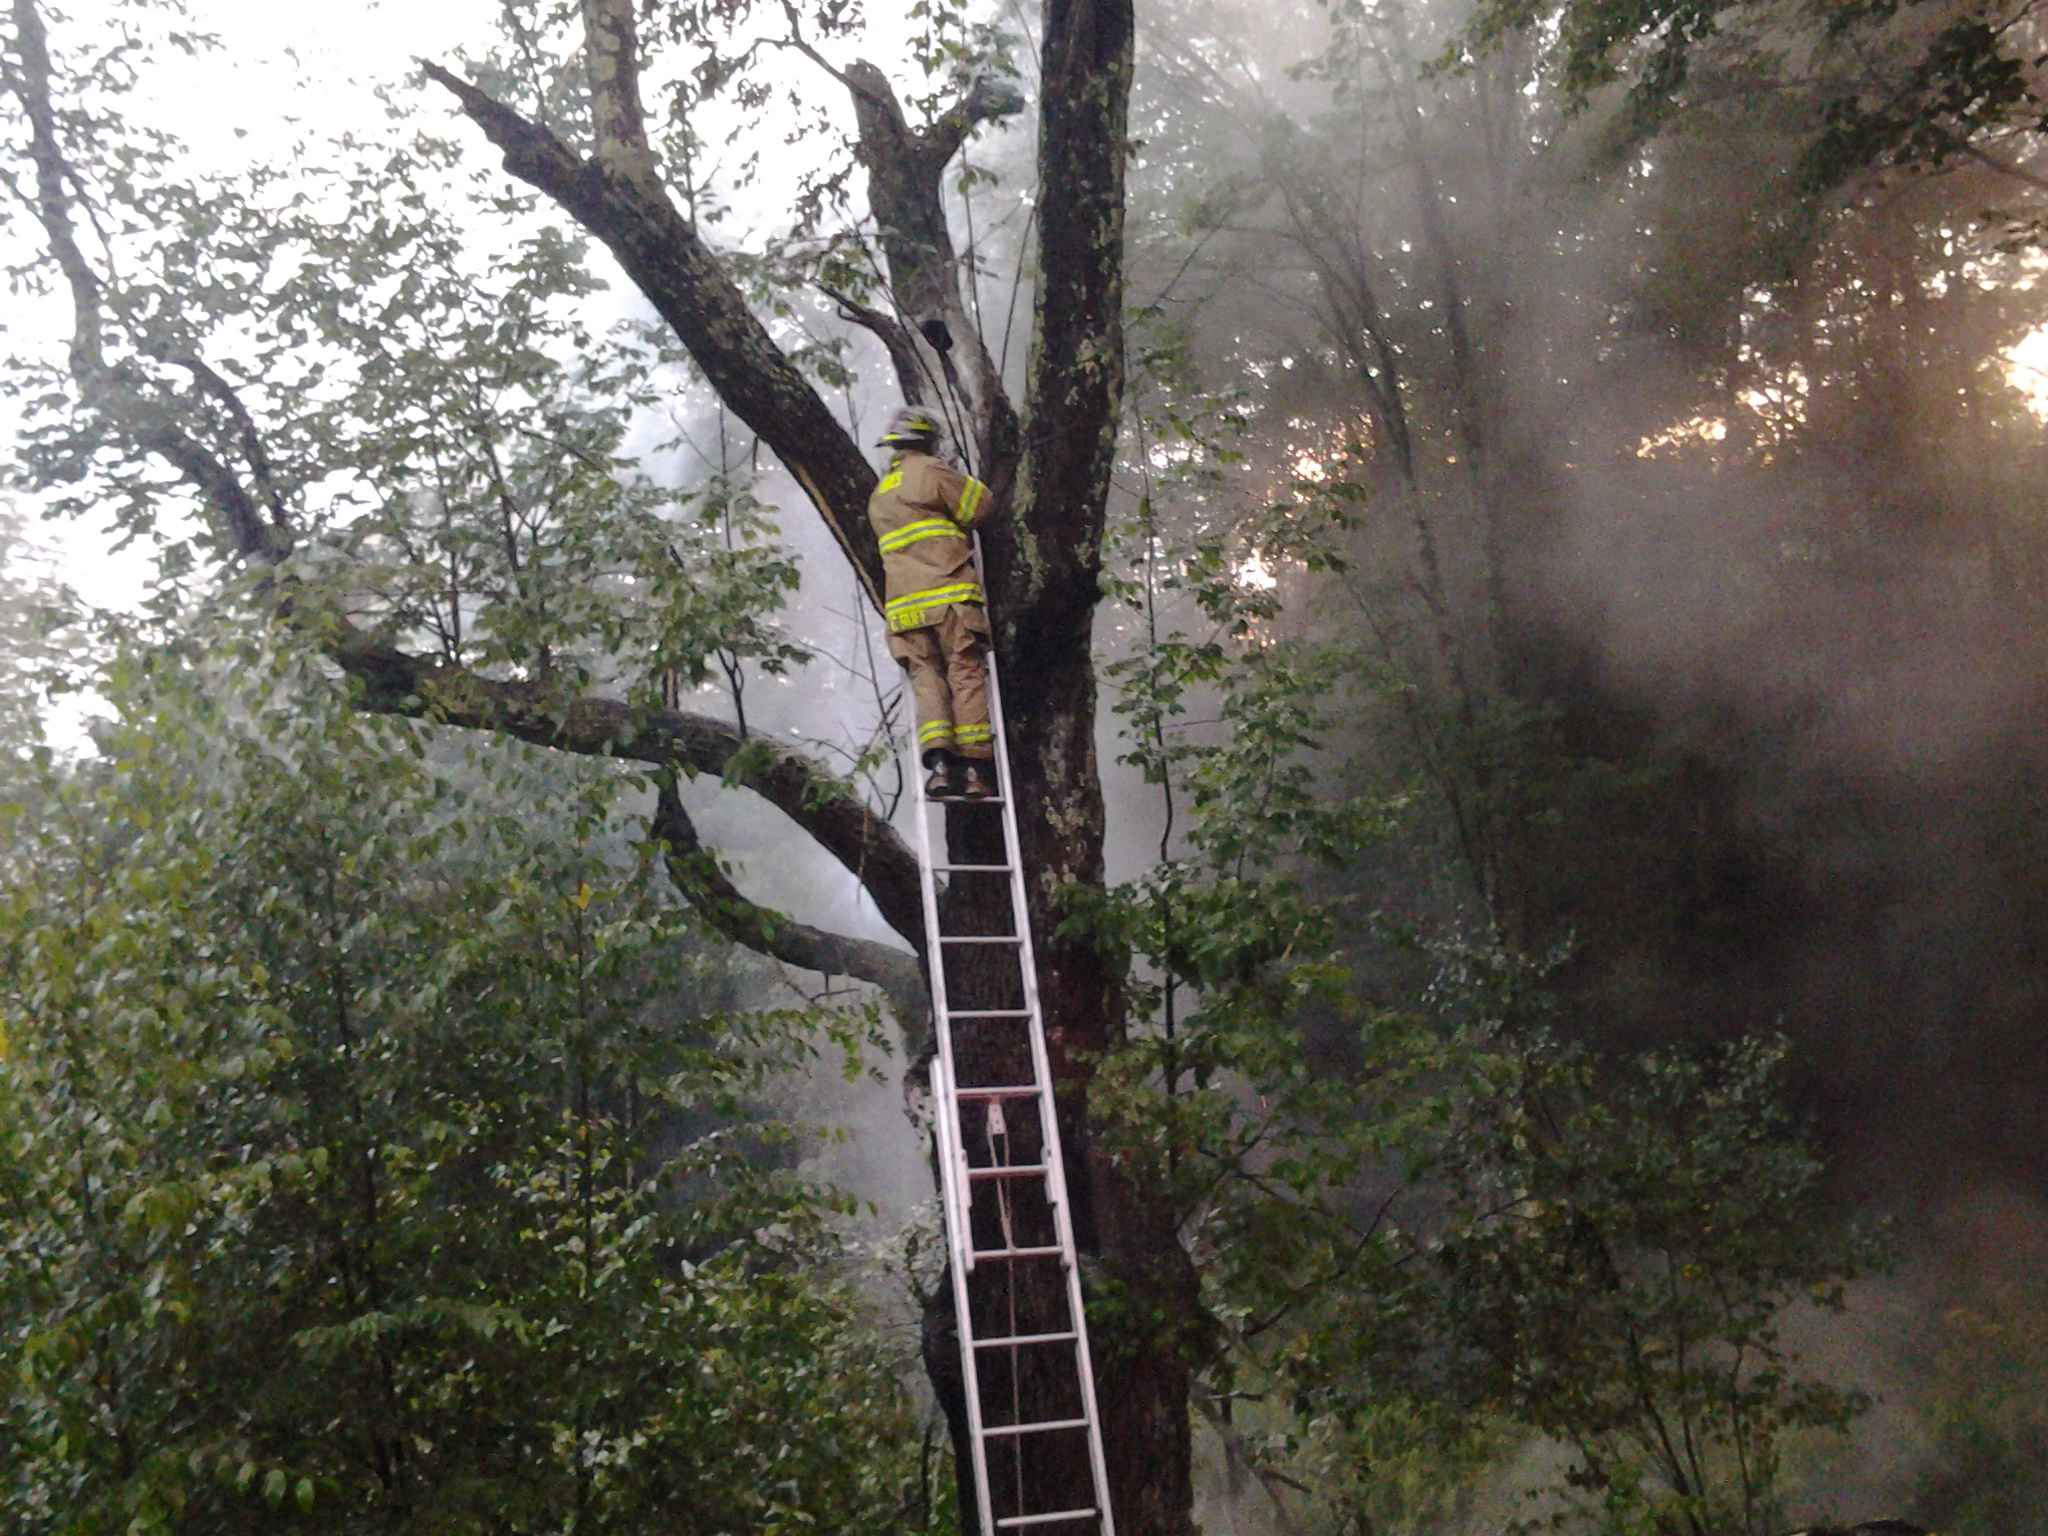 FIRE DEPARTMENT'S HANDLING OF TREE FIRE GARNERS THANKS — October 2013